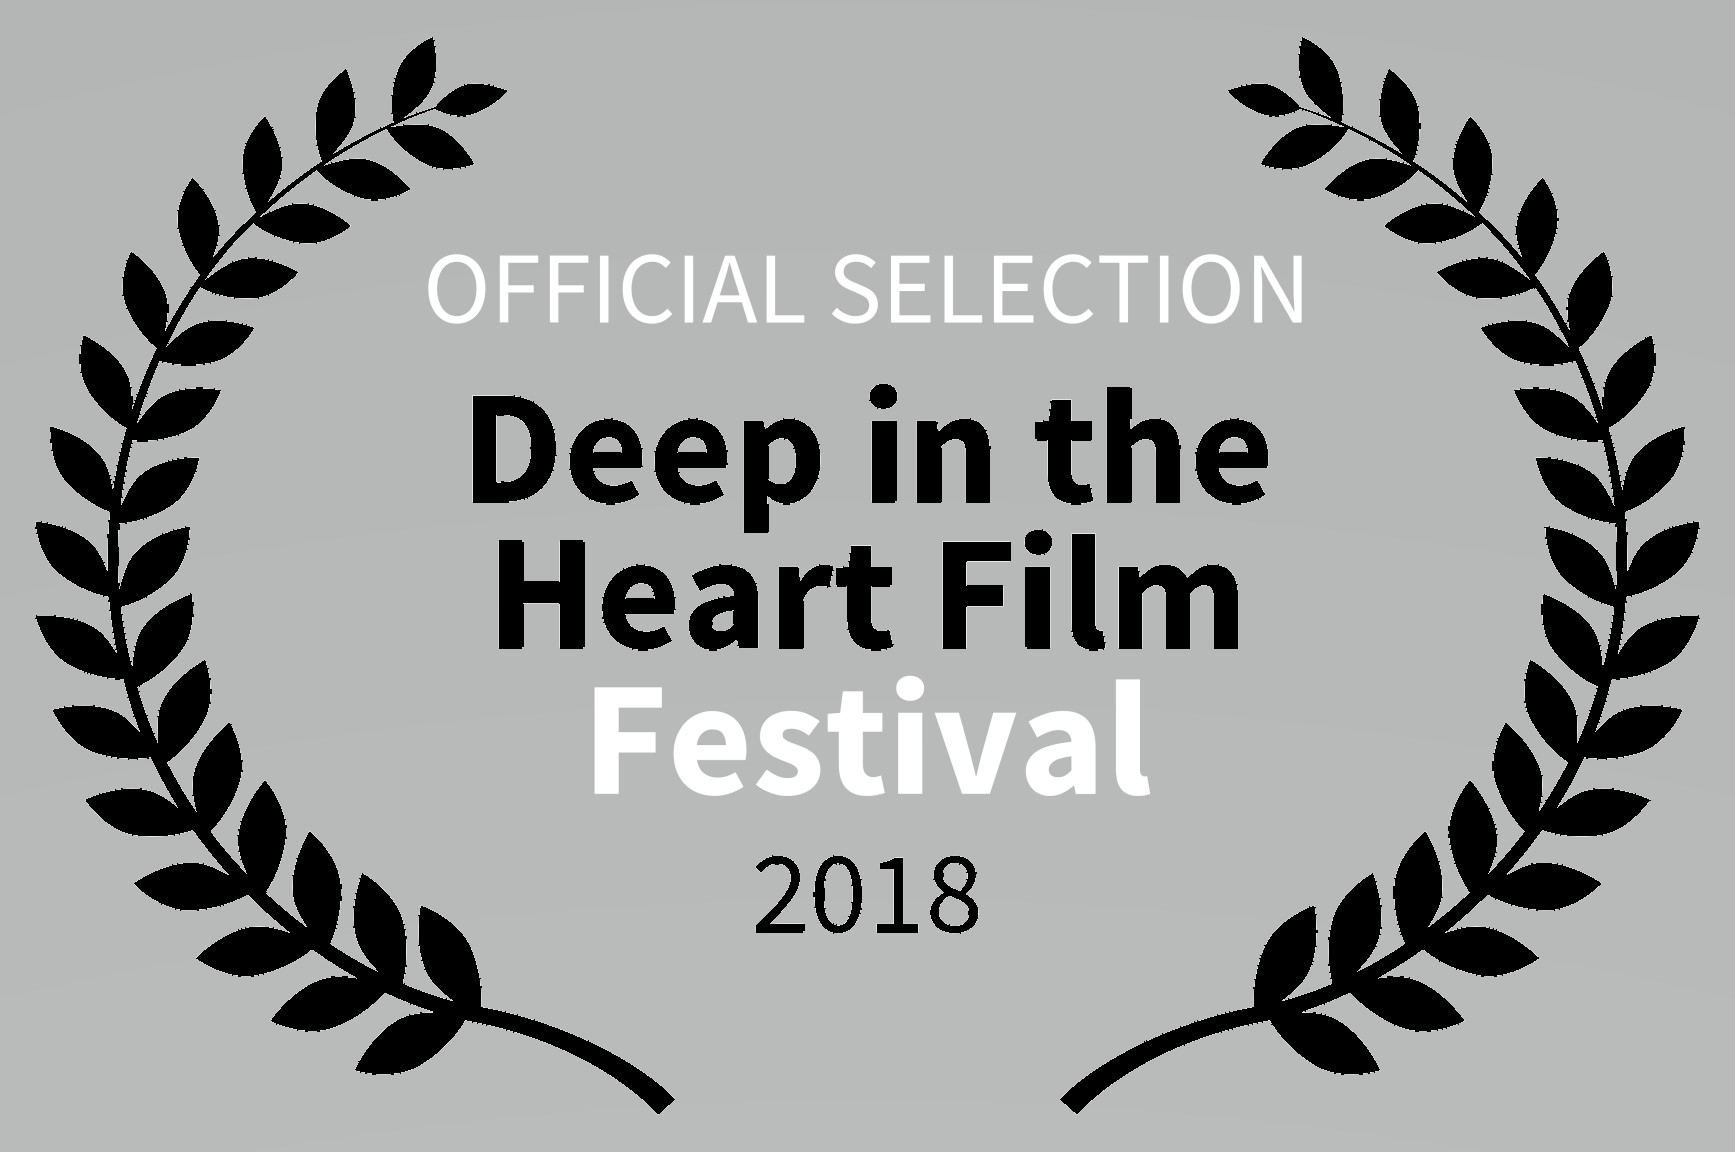 OFFICIAL SELECTION - Deep in the Heart Film Festival - 2018.jpg